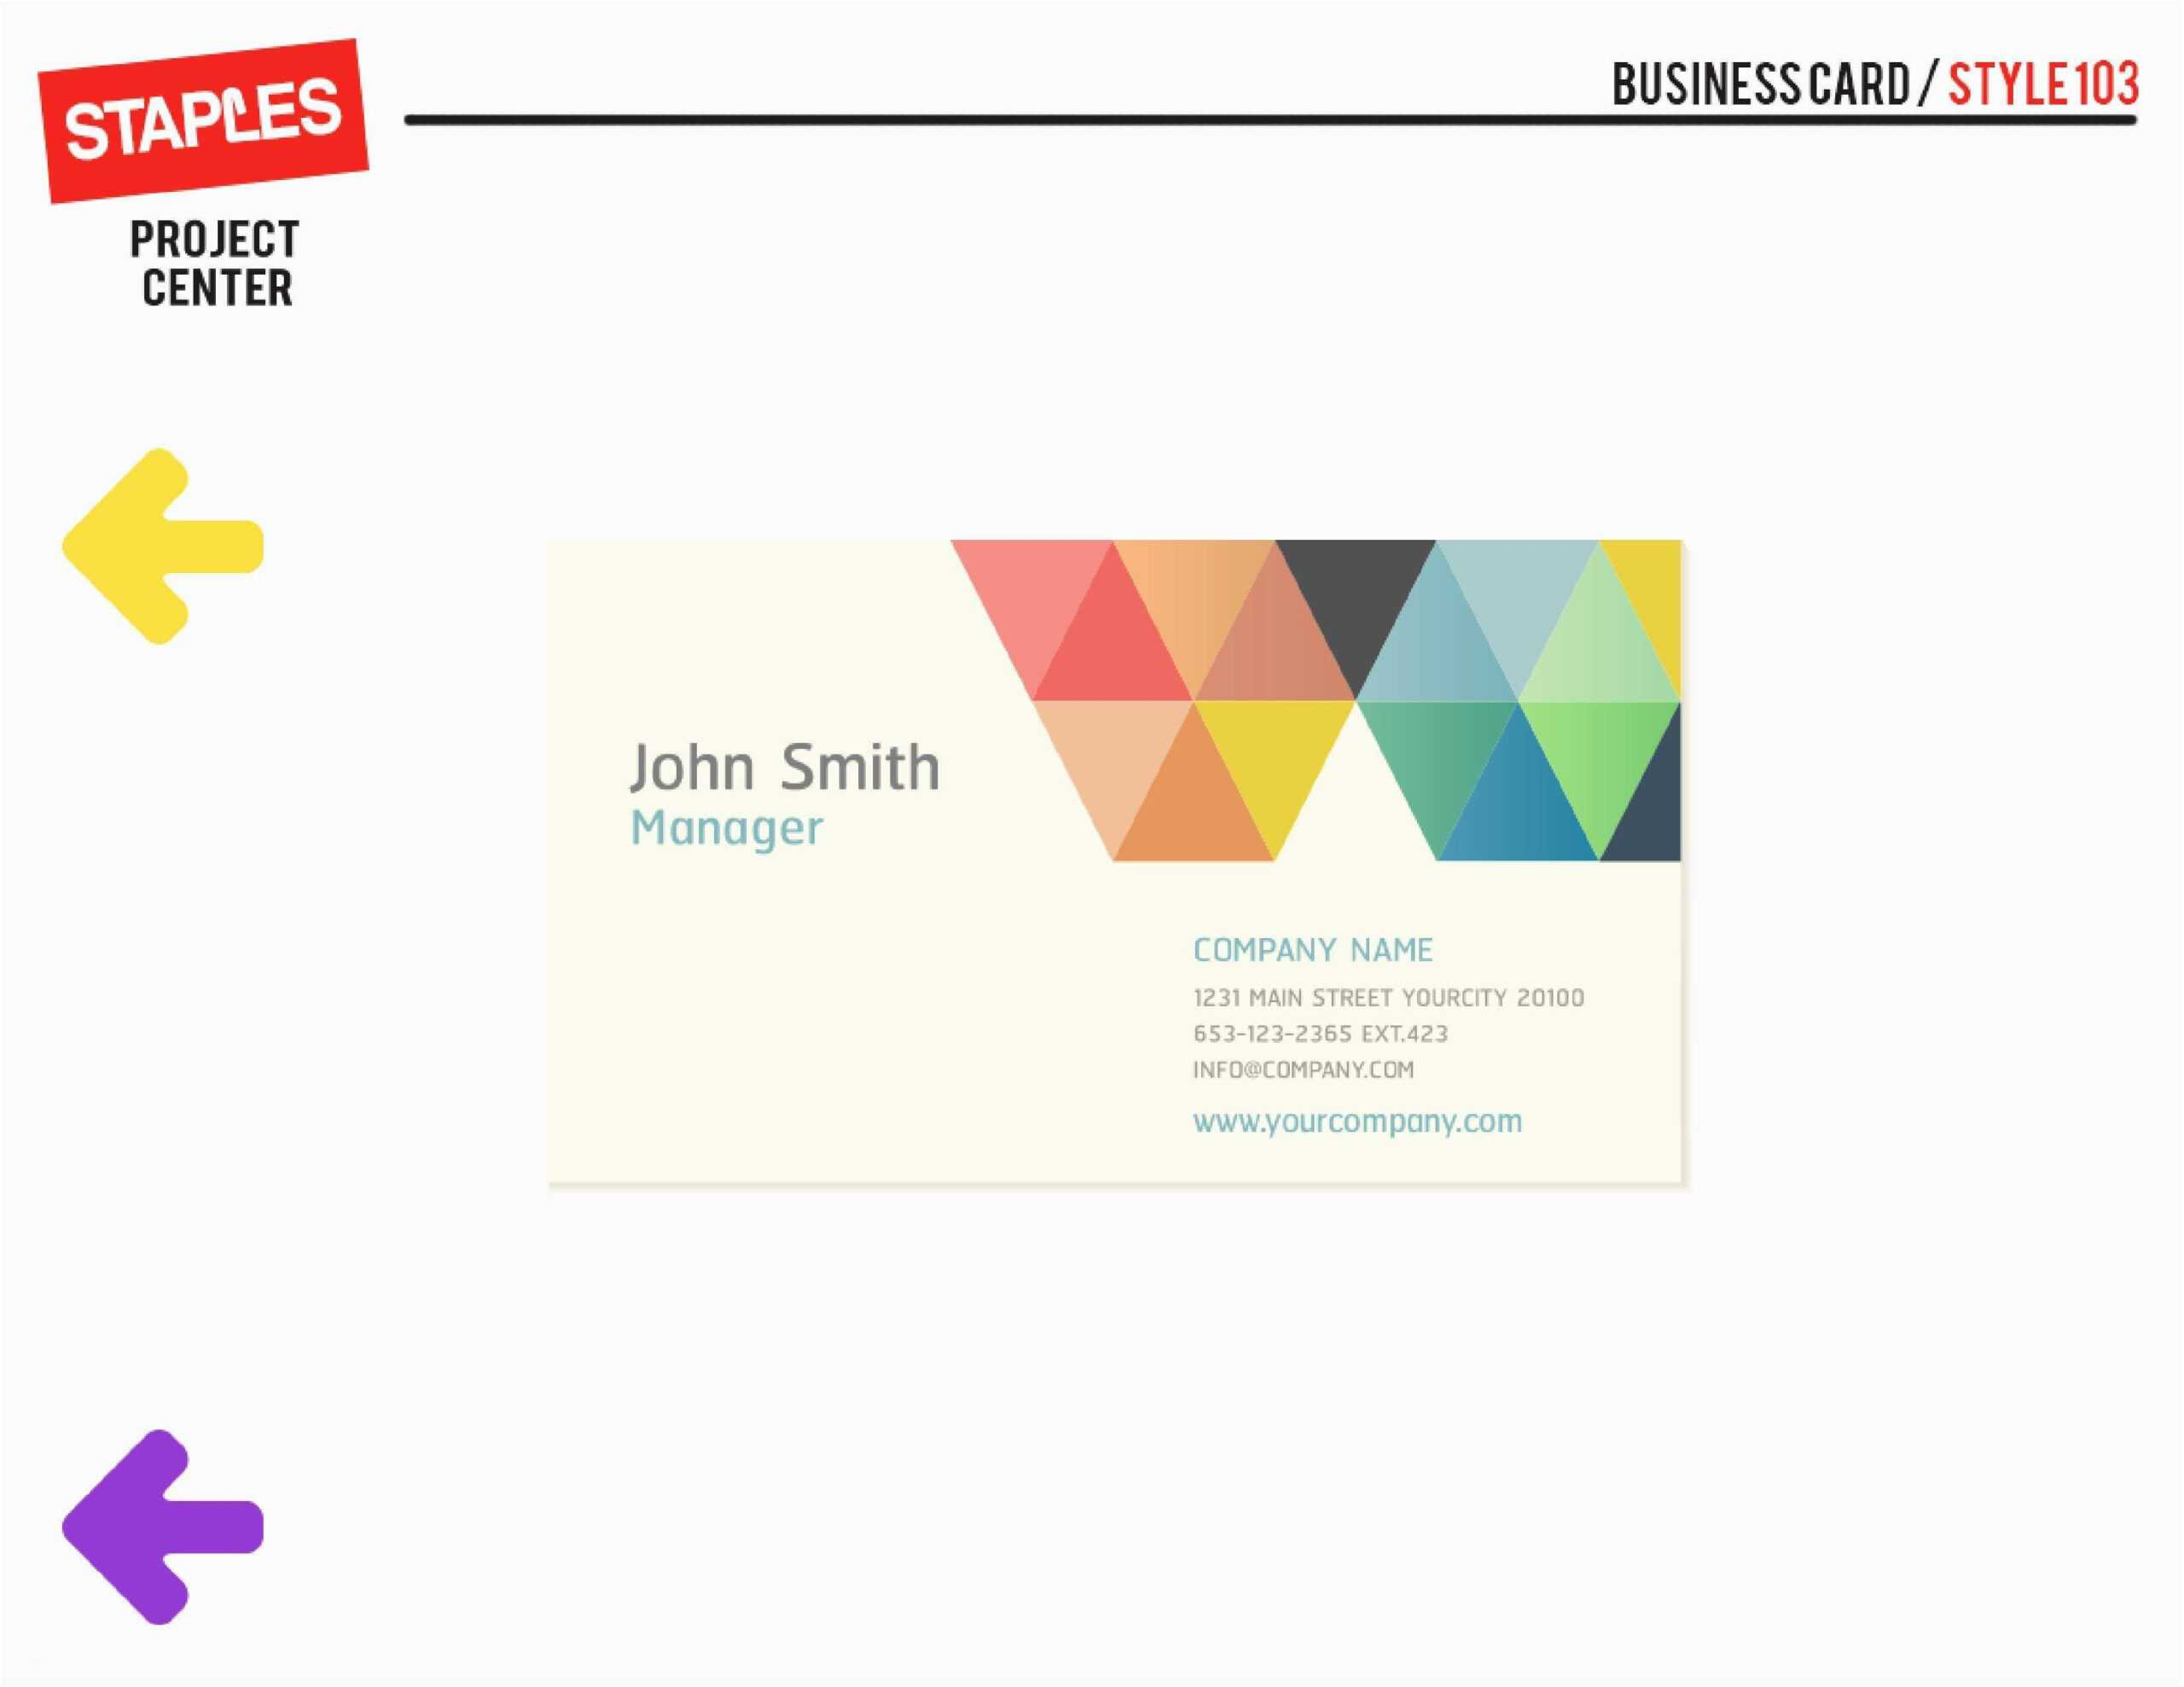 93 Printable Staples Business Card Template 12520 Formating For Staples Business Card Template